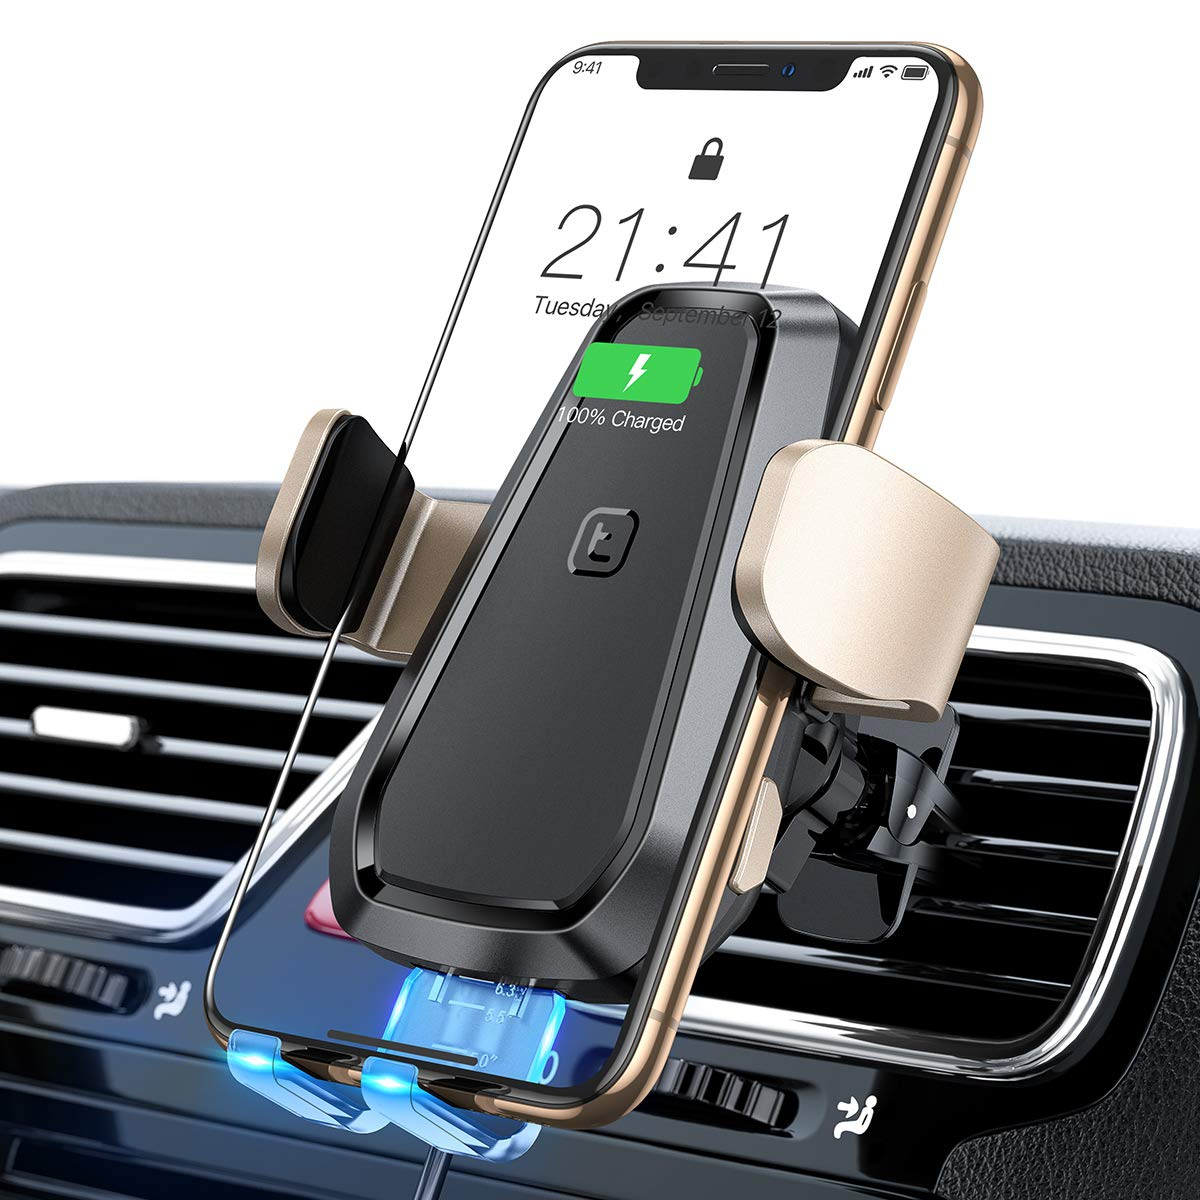 TORRAS Wireless Car Charger Mount, Auto Clamping 10W/7.5W Qi Fast Wireless Charger and Air Vent Phone Holder Compatible with iPhone Xs Max/XR/Xs/8/8 Plus, Samsung Galaxy S10e/S10/S10 Plus/S9/S8+/Note8